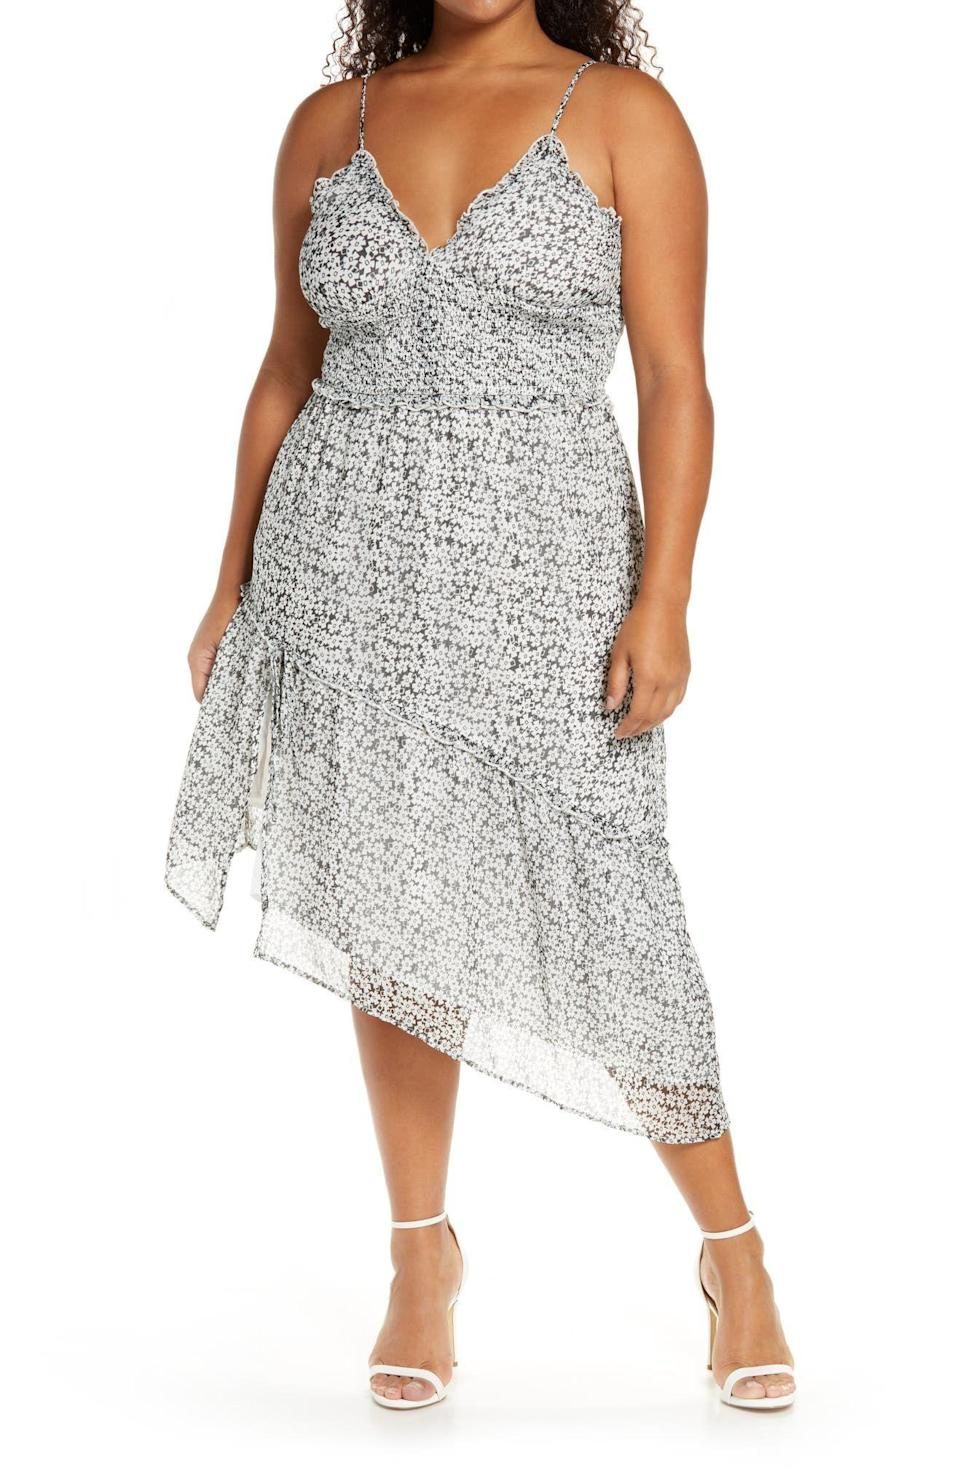 """<p><strong>Leith</strong></p><p>nordstrom.com</p><p><strong>$47.40</strong></p><p><a href=""""https://go.redirectingat.com?id=74968X1596630&url=https%3A%2F%2Fwww.nordstrom.com%2Fs%2Fleith-sleeveless-asymmetrical-dress-plus-size%2F5503666%3Forigin%3Dcategory-personalizedsort%26breadcrumb%3DHome%252FBrands%252FLeith%252FWomen%252FClothing%26color%3Dblack%2Bjenn%2Bgeo&sref=https%3A%2F%2Fwww.oprahmag.com%2Fstyle%2Fg25858020%2Fcute-spring-dresses%2F"""" rel=""""nofollow noopener"""" target=""""_blank"""" data-ylk=""""slk:SHOP NOW"""" class=""""link rapid-noclick-resp"""">SHOP NOW</a></p><p>With an asymmetric hem that will show off your shoes, this geometric floral print dress with a smocked waist is perfect for any warm weather parties. </p>"""